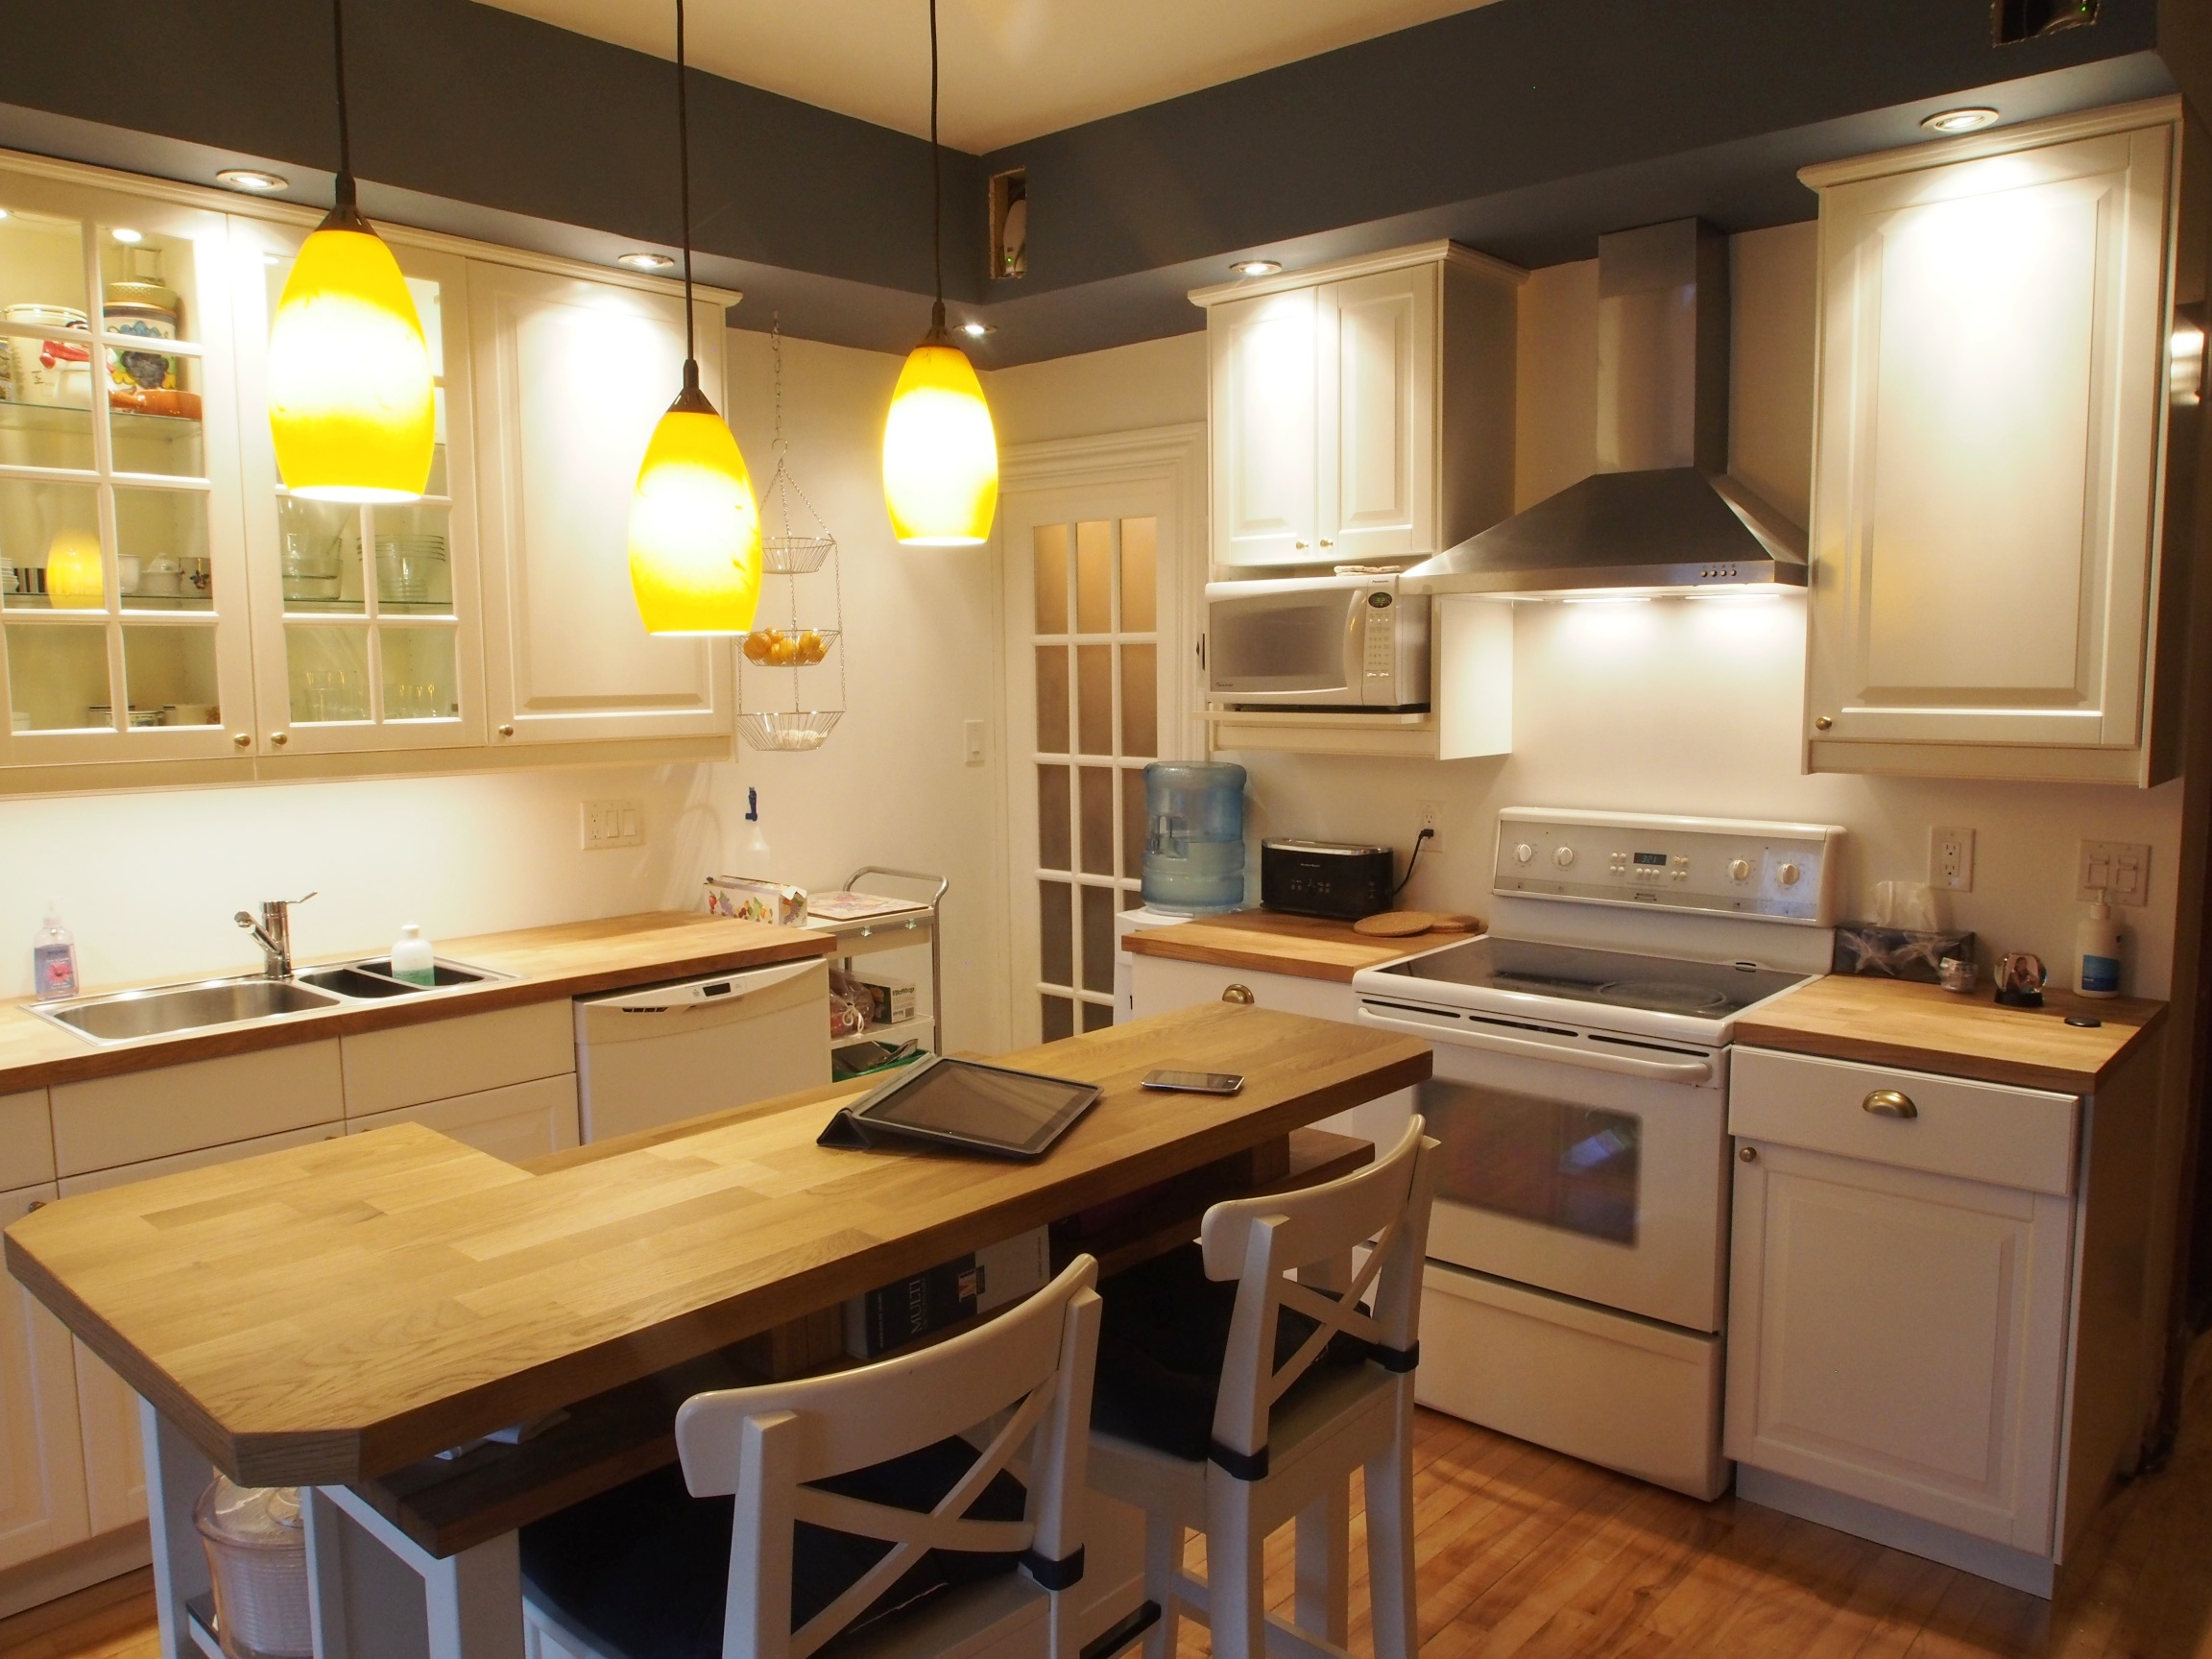 Ikd kitchen favorite the cozy family ikea kitchen for Inspired kitchen design